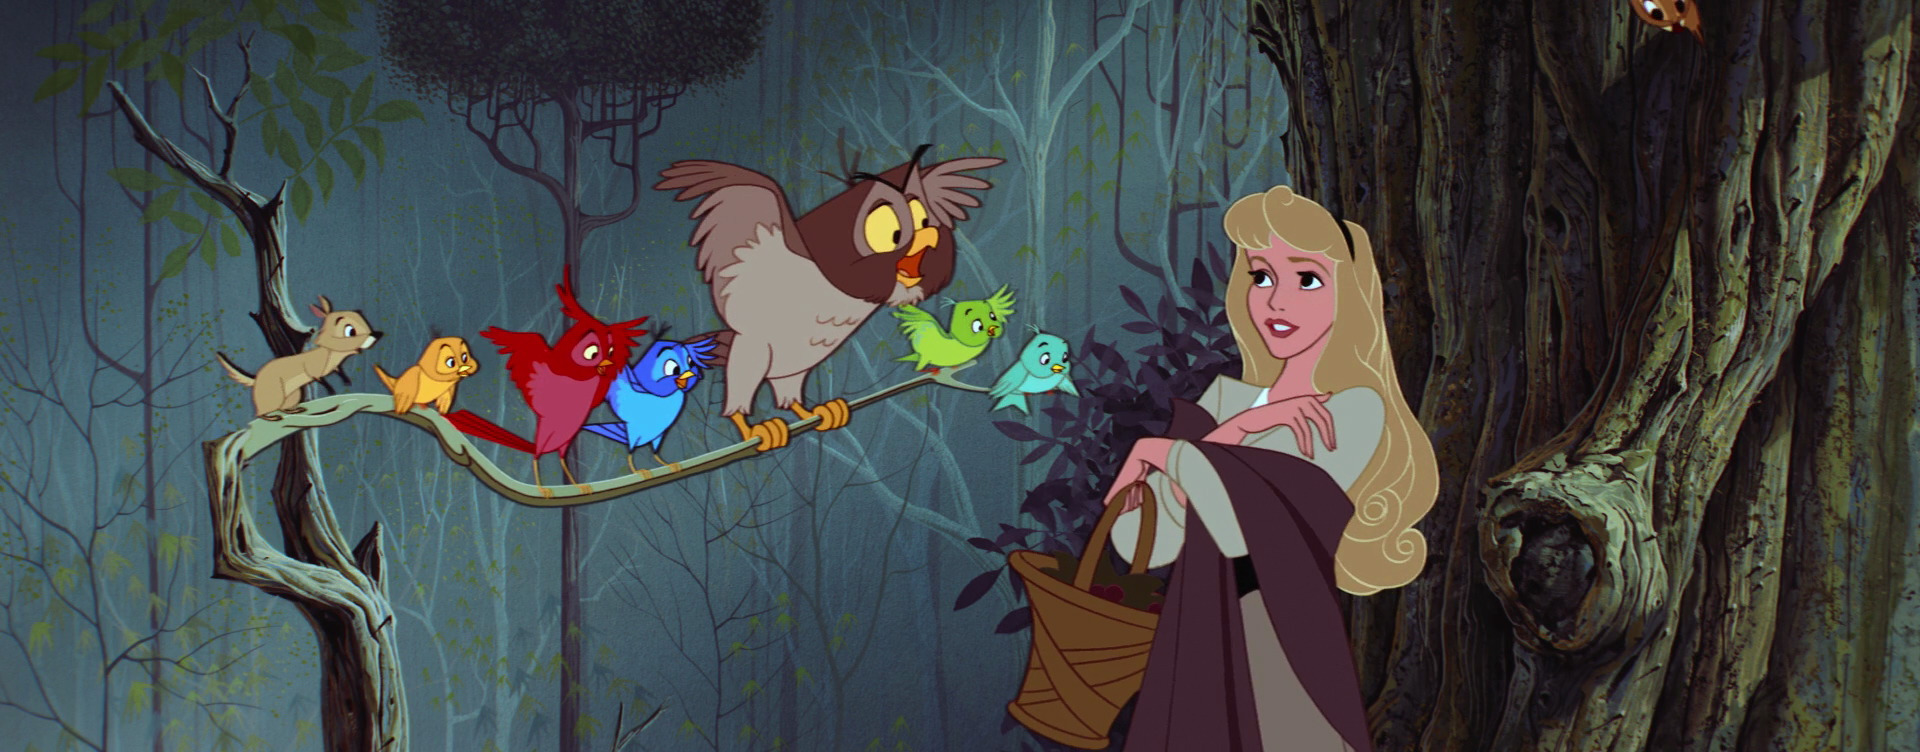 Sleeping Beauty Disney Coloring Pages